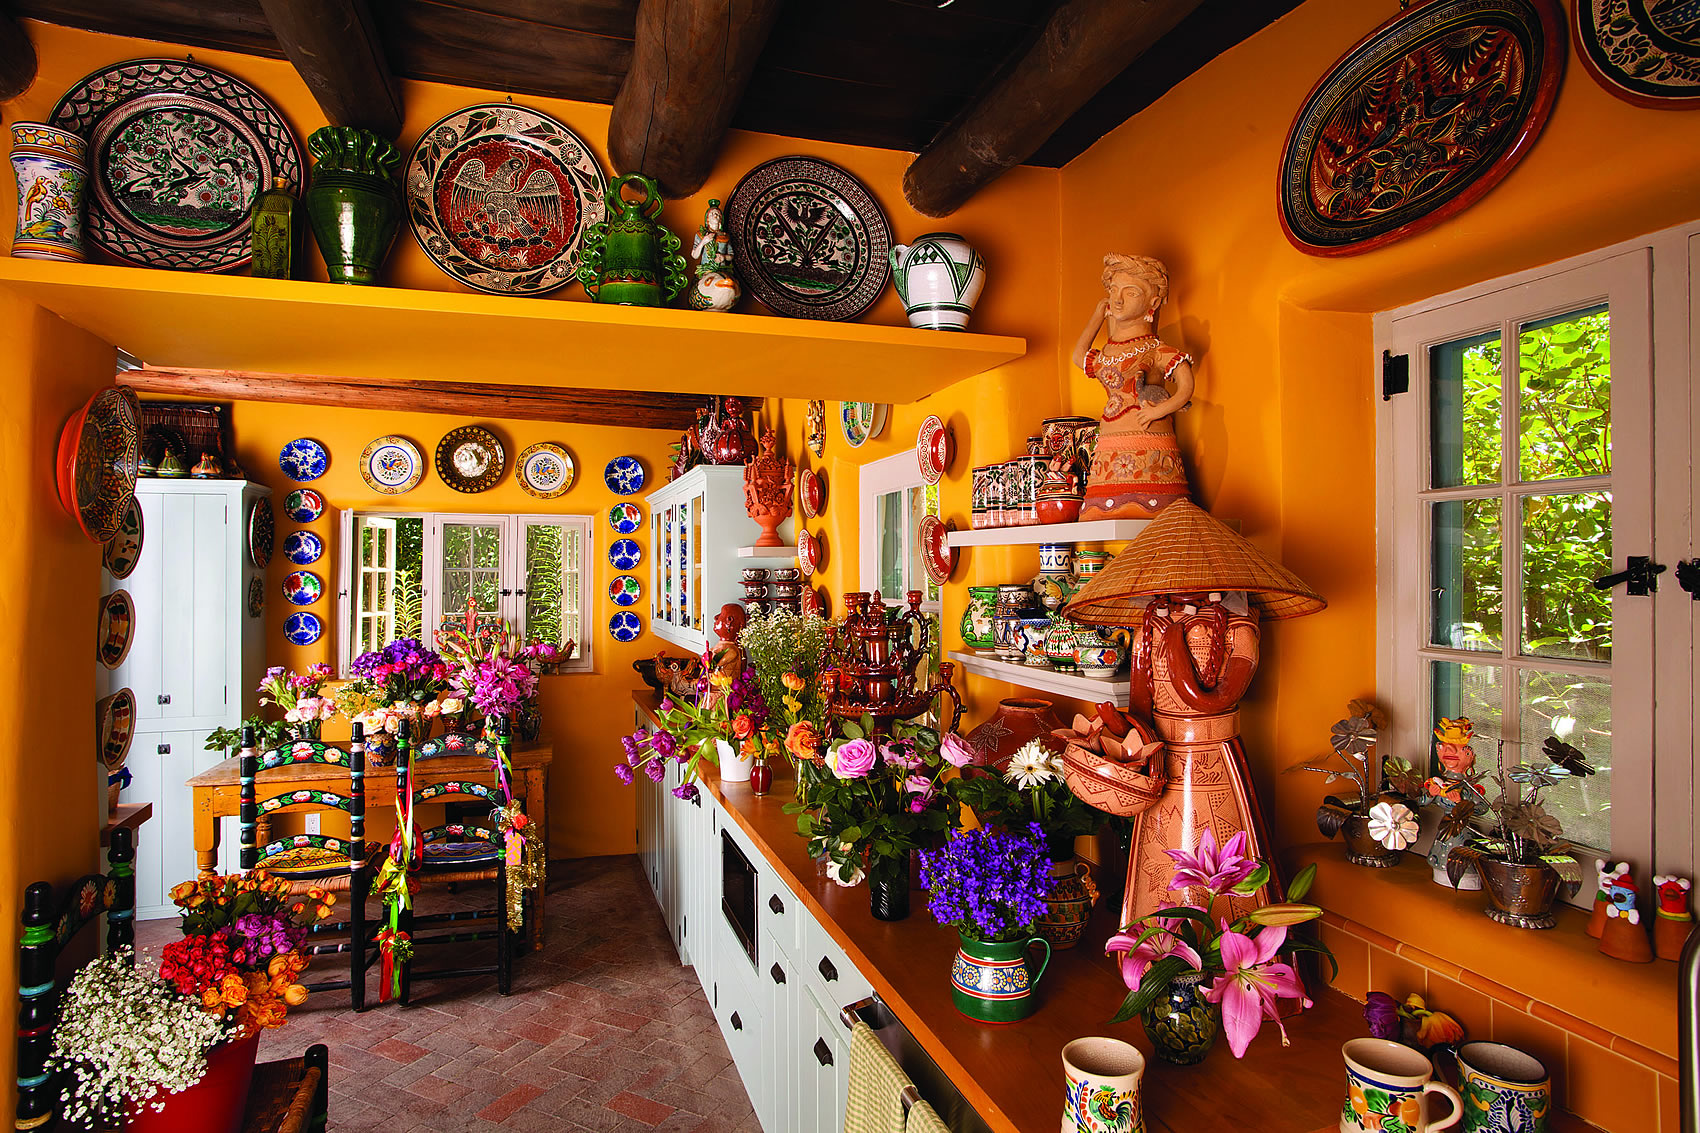 View of kitchen, home of Judith Espinar